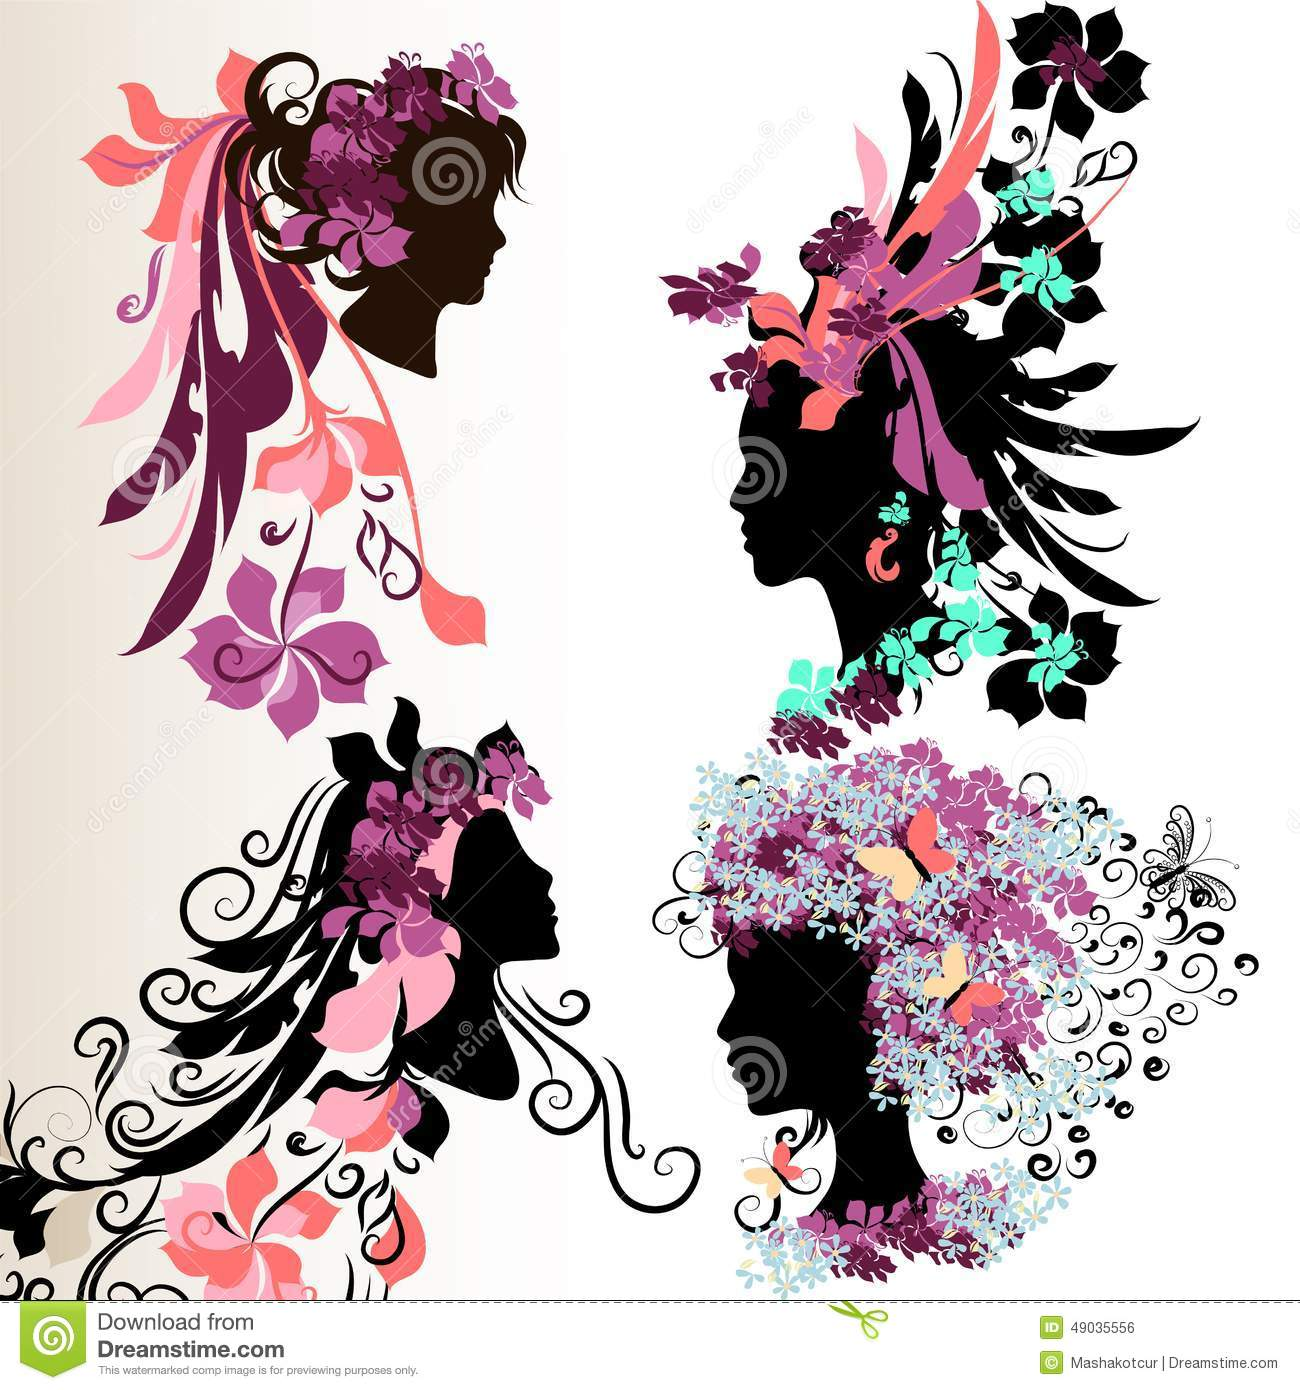 flower girl vector abstract - photo #9